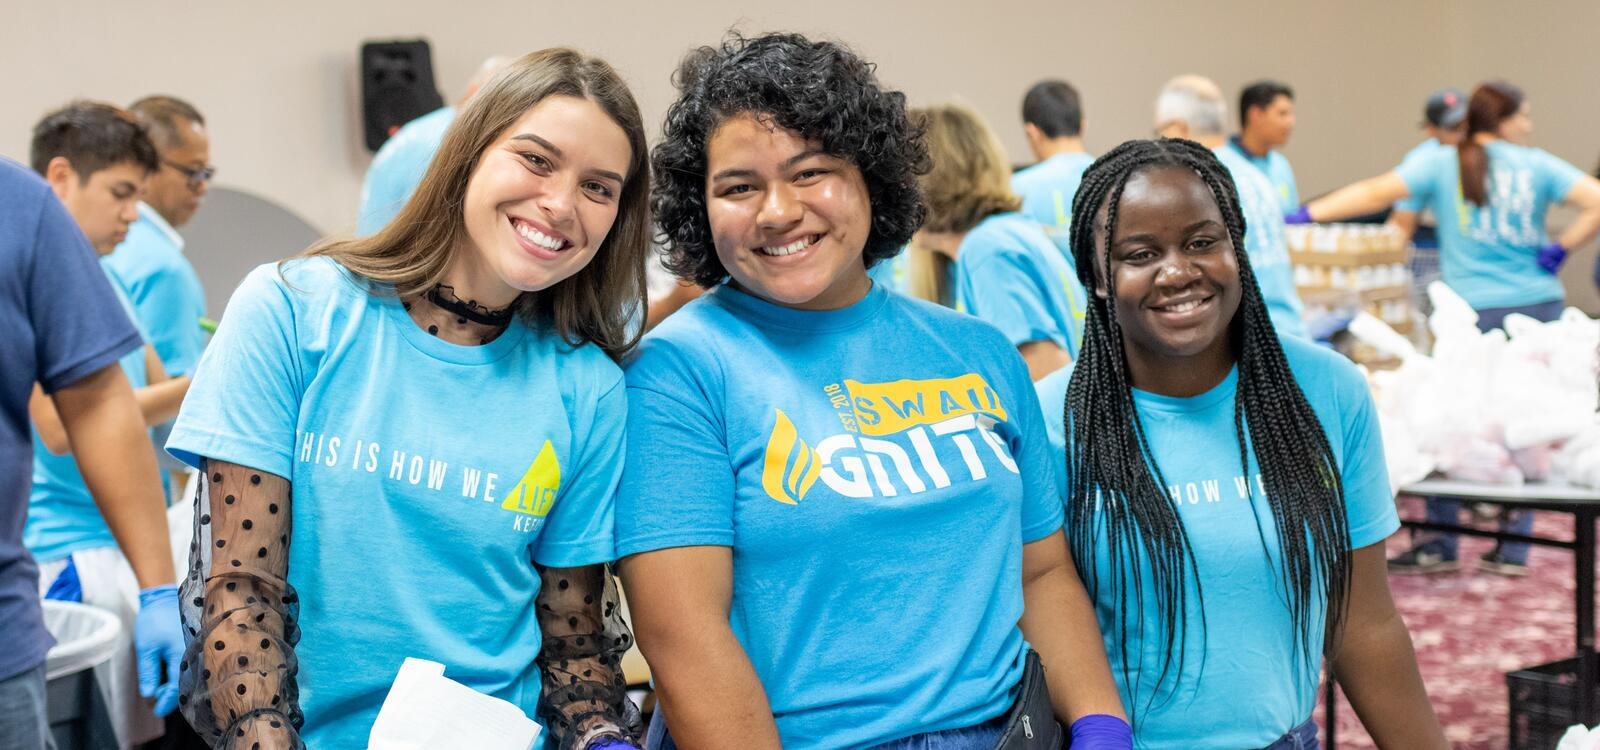 Matching in teal shirts, three women smiles big as they lend a helping hand to the local food bank